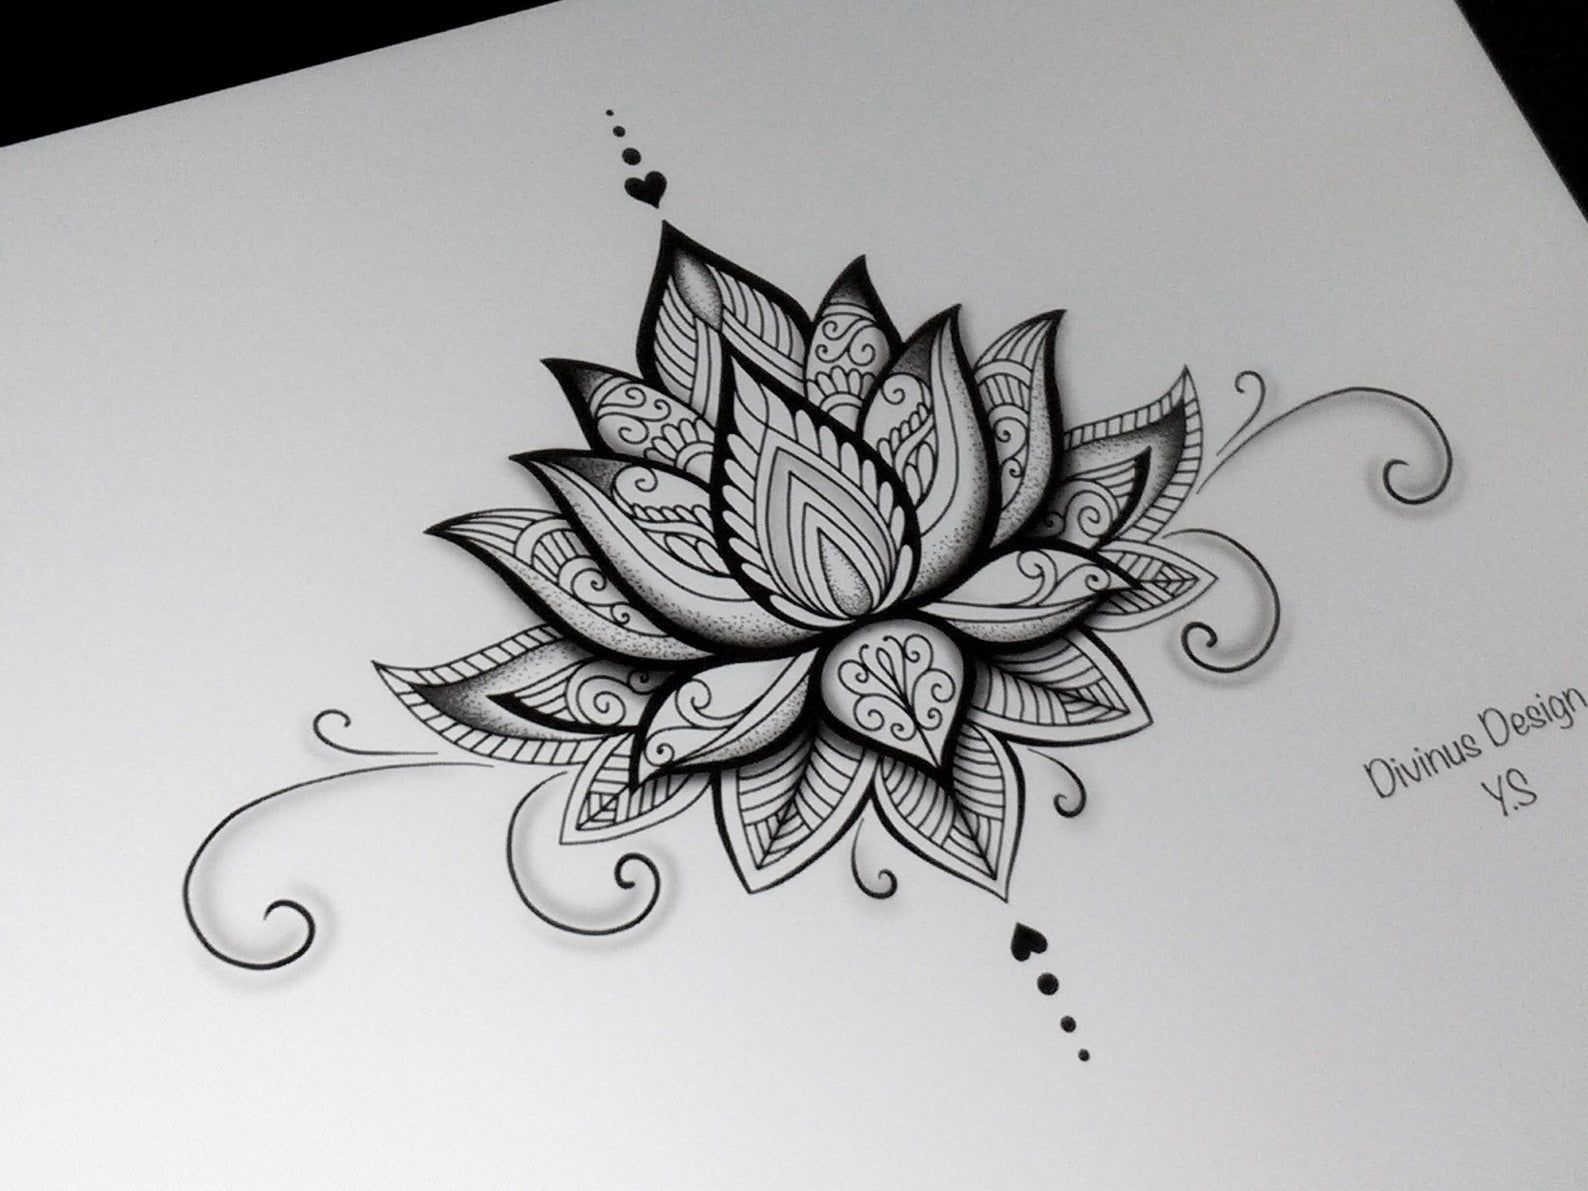 Lotus Mandala Tattoo Design and Stencil/Template - Instant Digital Download